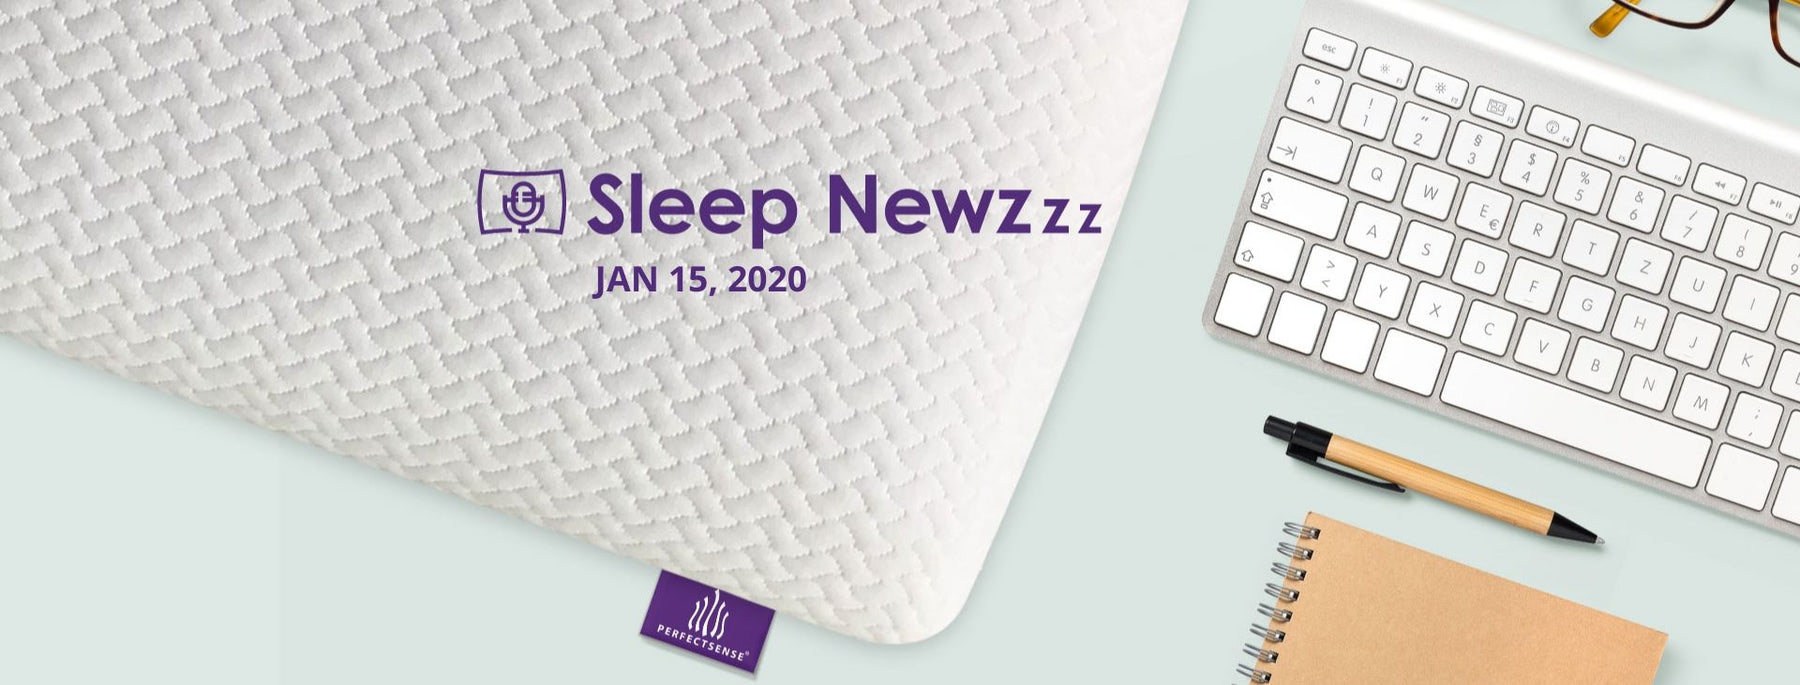 Sleep Newzzz - January 15, 2020